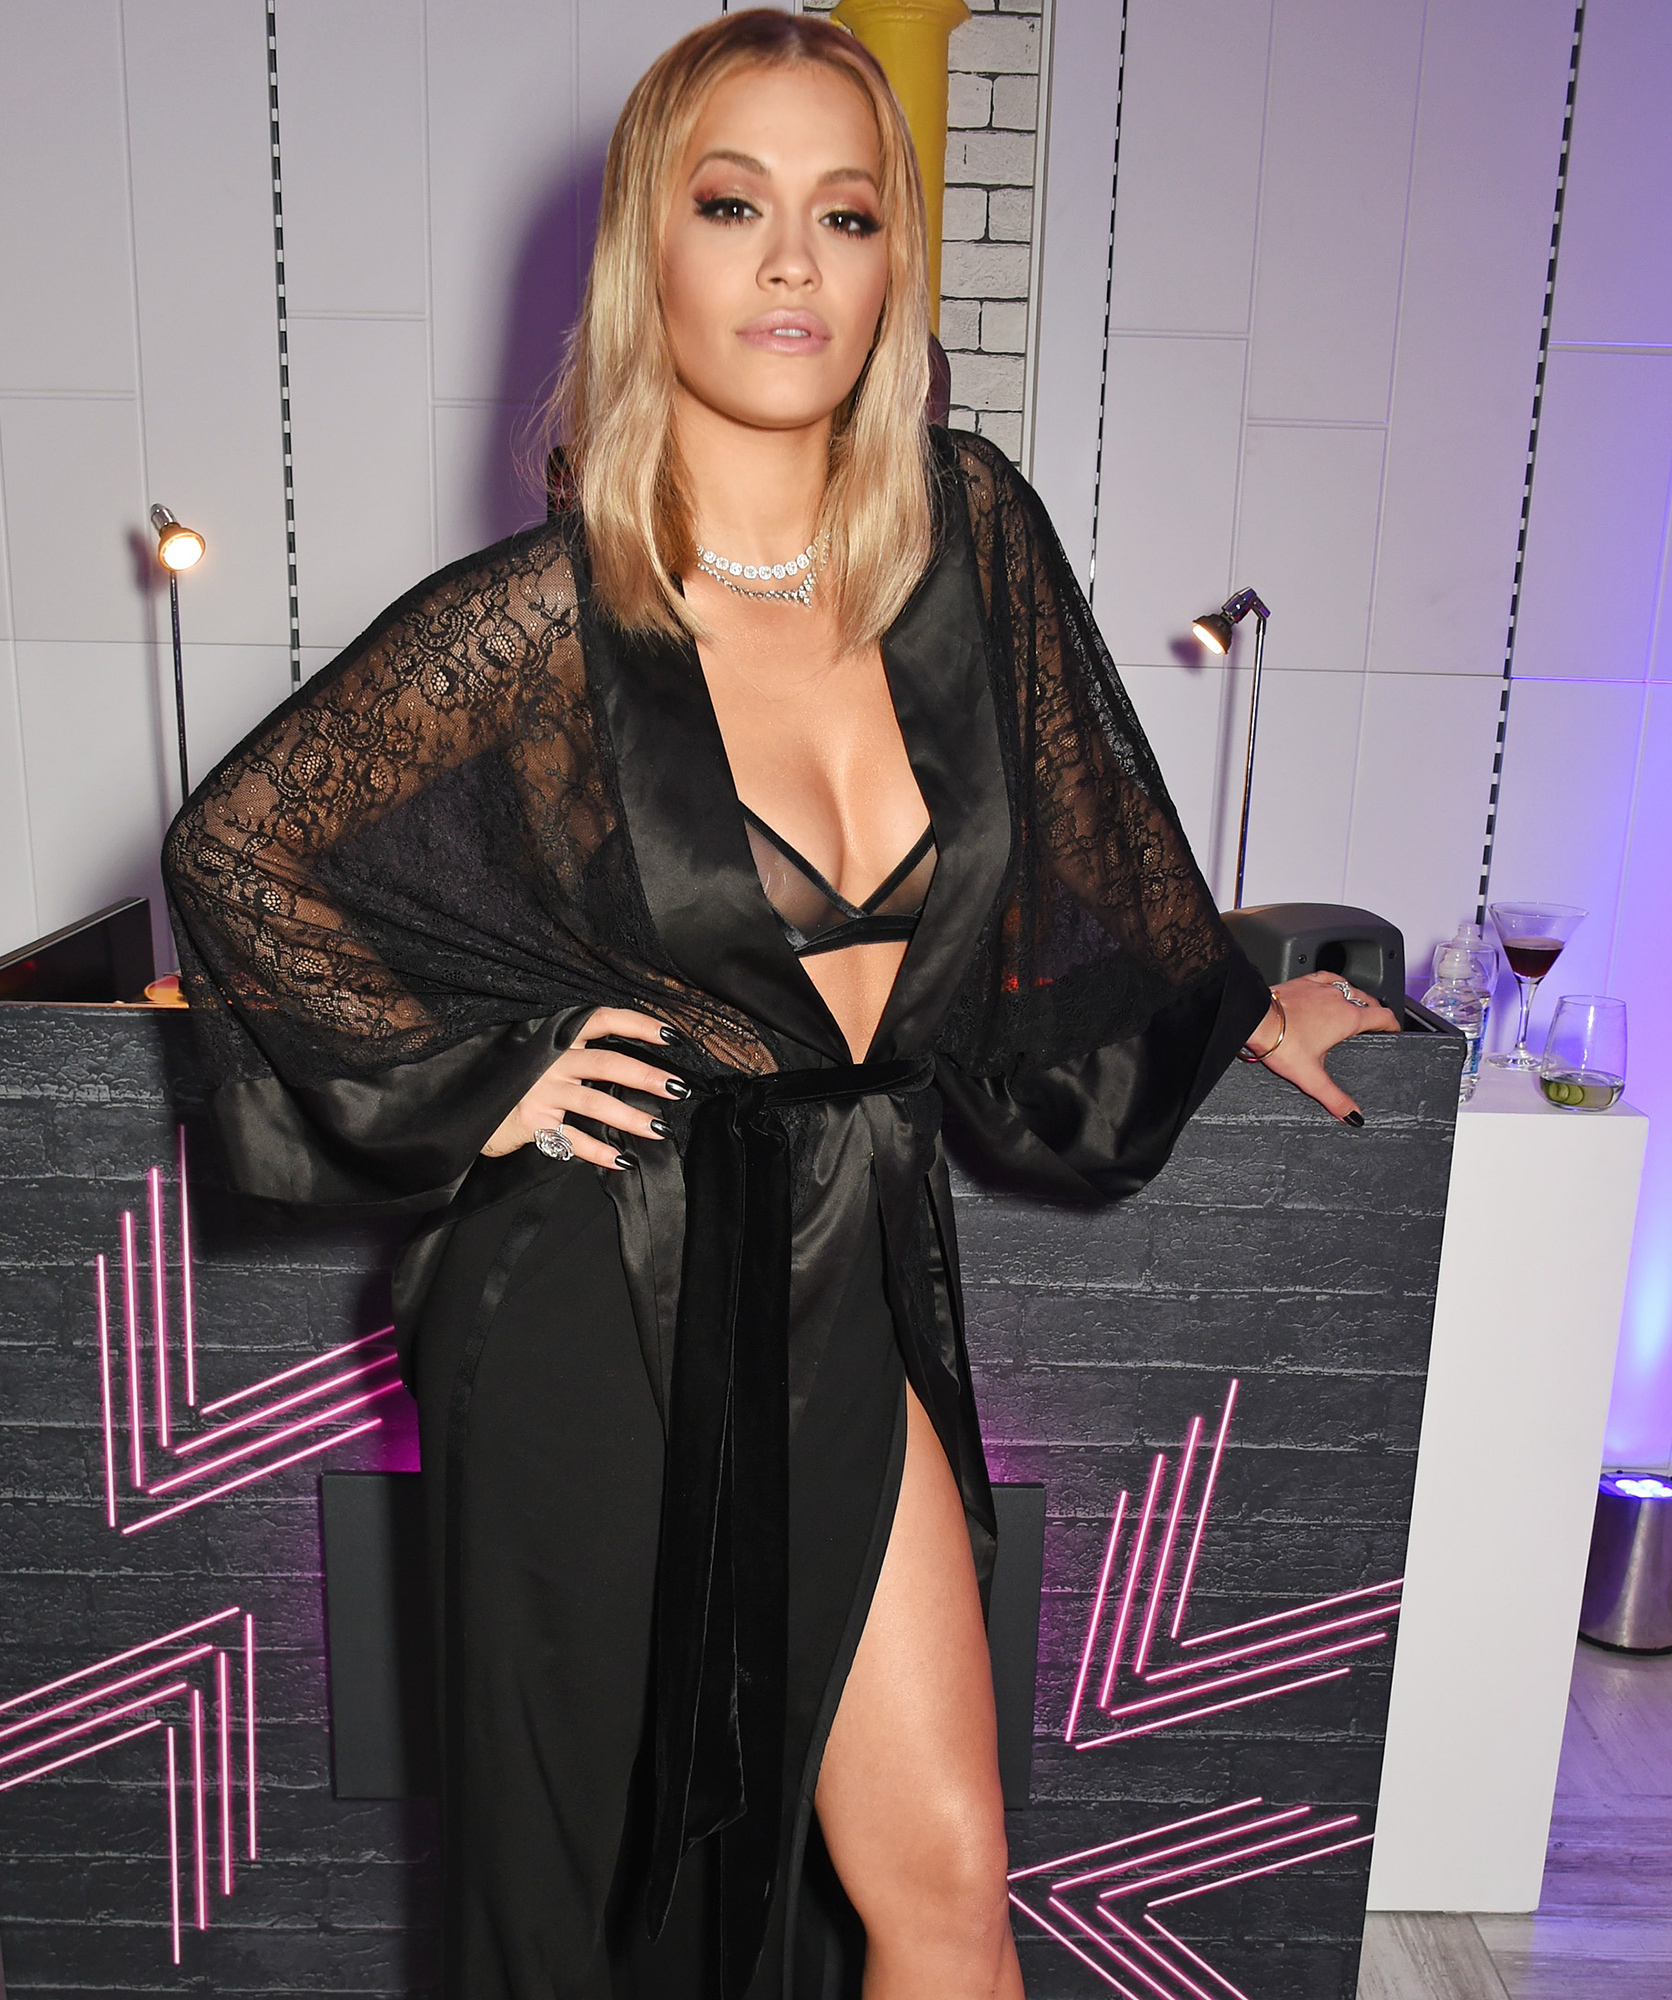 Rita Ora Relaunches Tezenis Oxford Circus With Intimate Gig